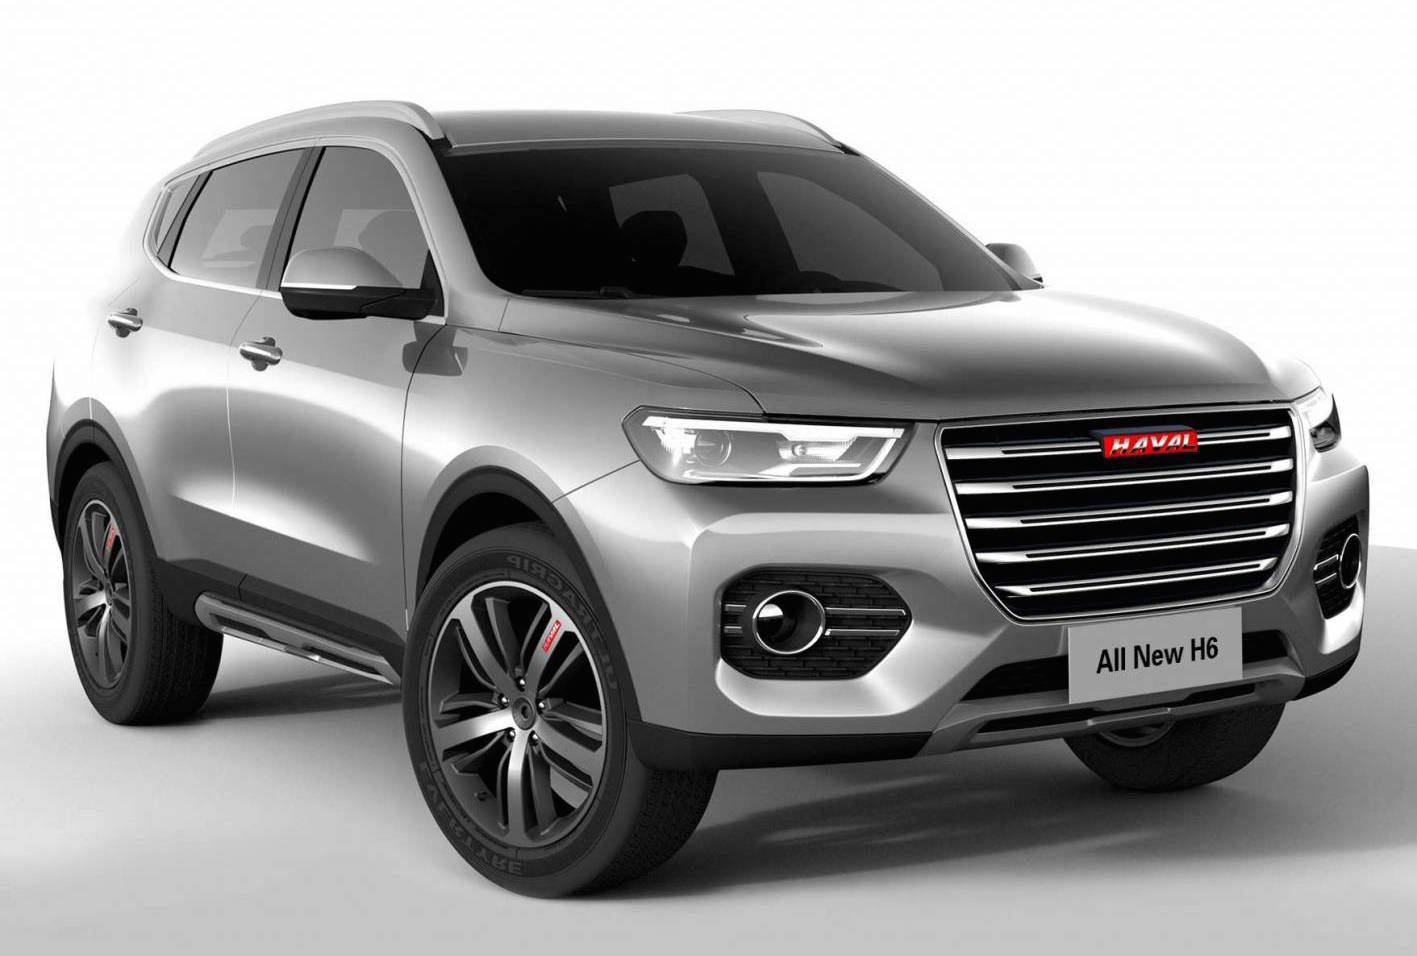 2017 Haval H6 Revealed With New Platform Amp Interior